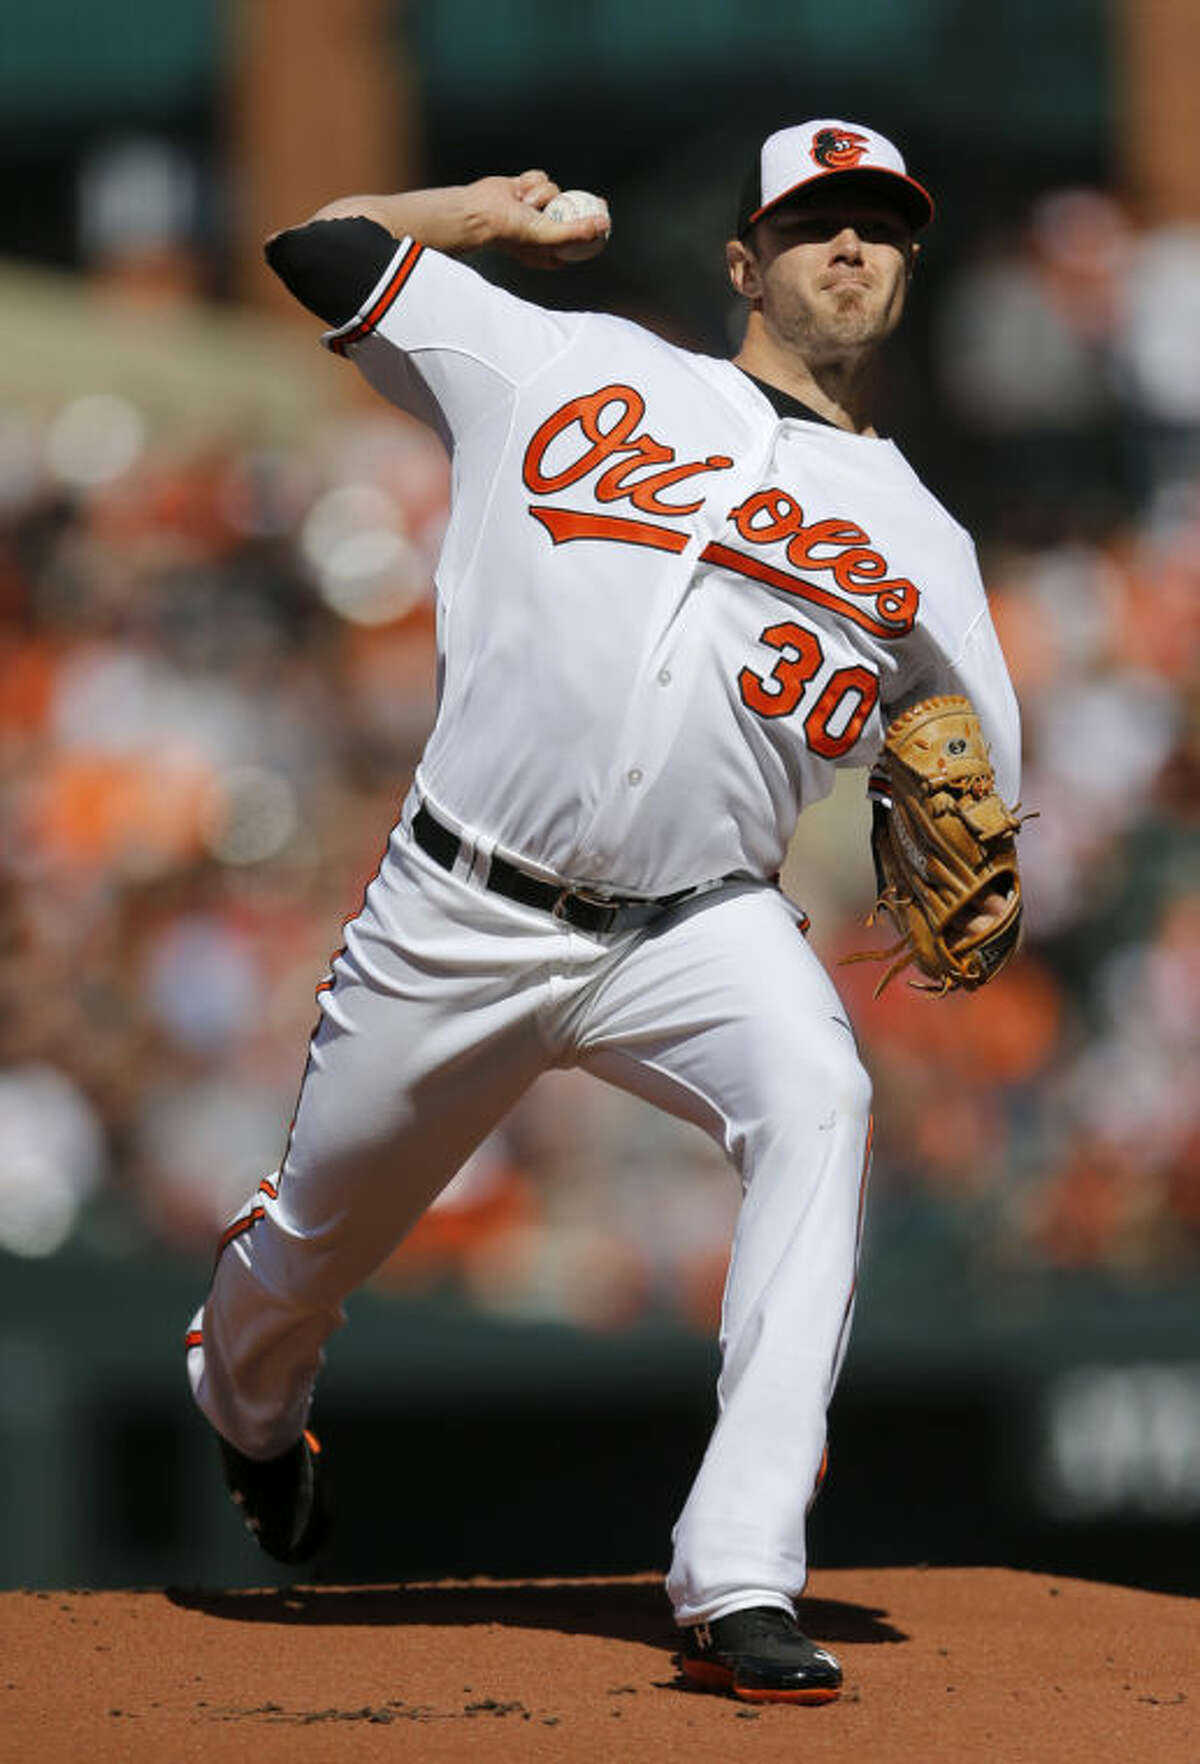 Baltimore Orioles starting pitcher Chris Tillman throws to the Boston Red Sox in the first inning of an opening day baseball game, Monday, March 31, 2014, in Baltimore. (AP Photo/Patrick Semansky)